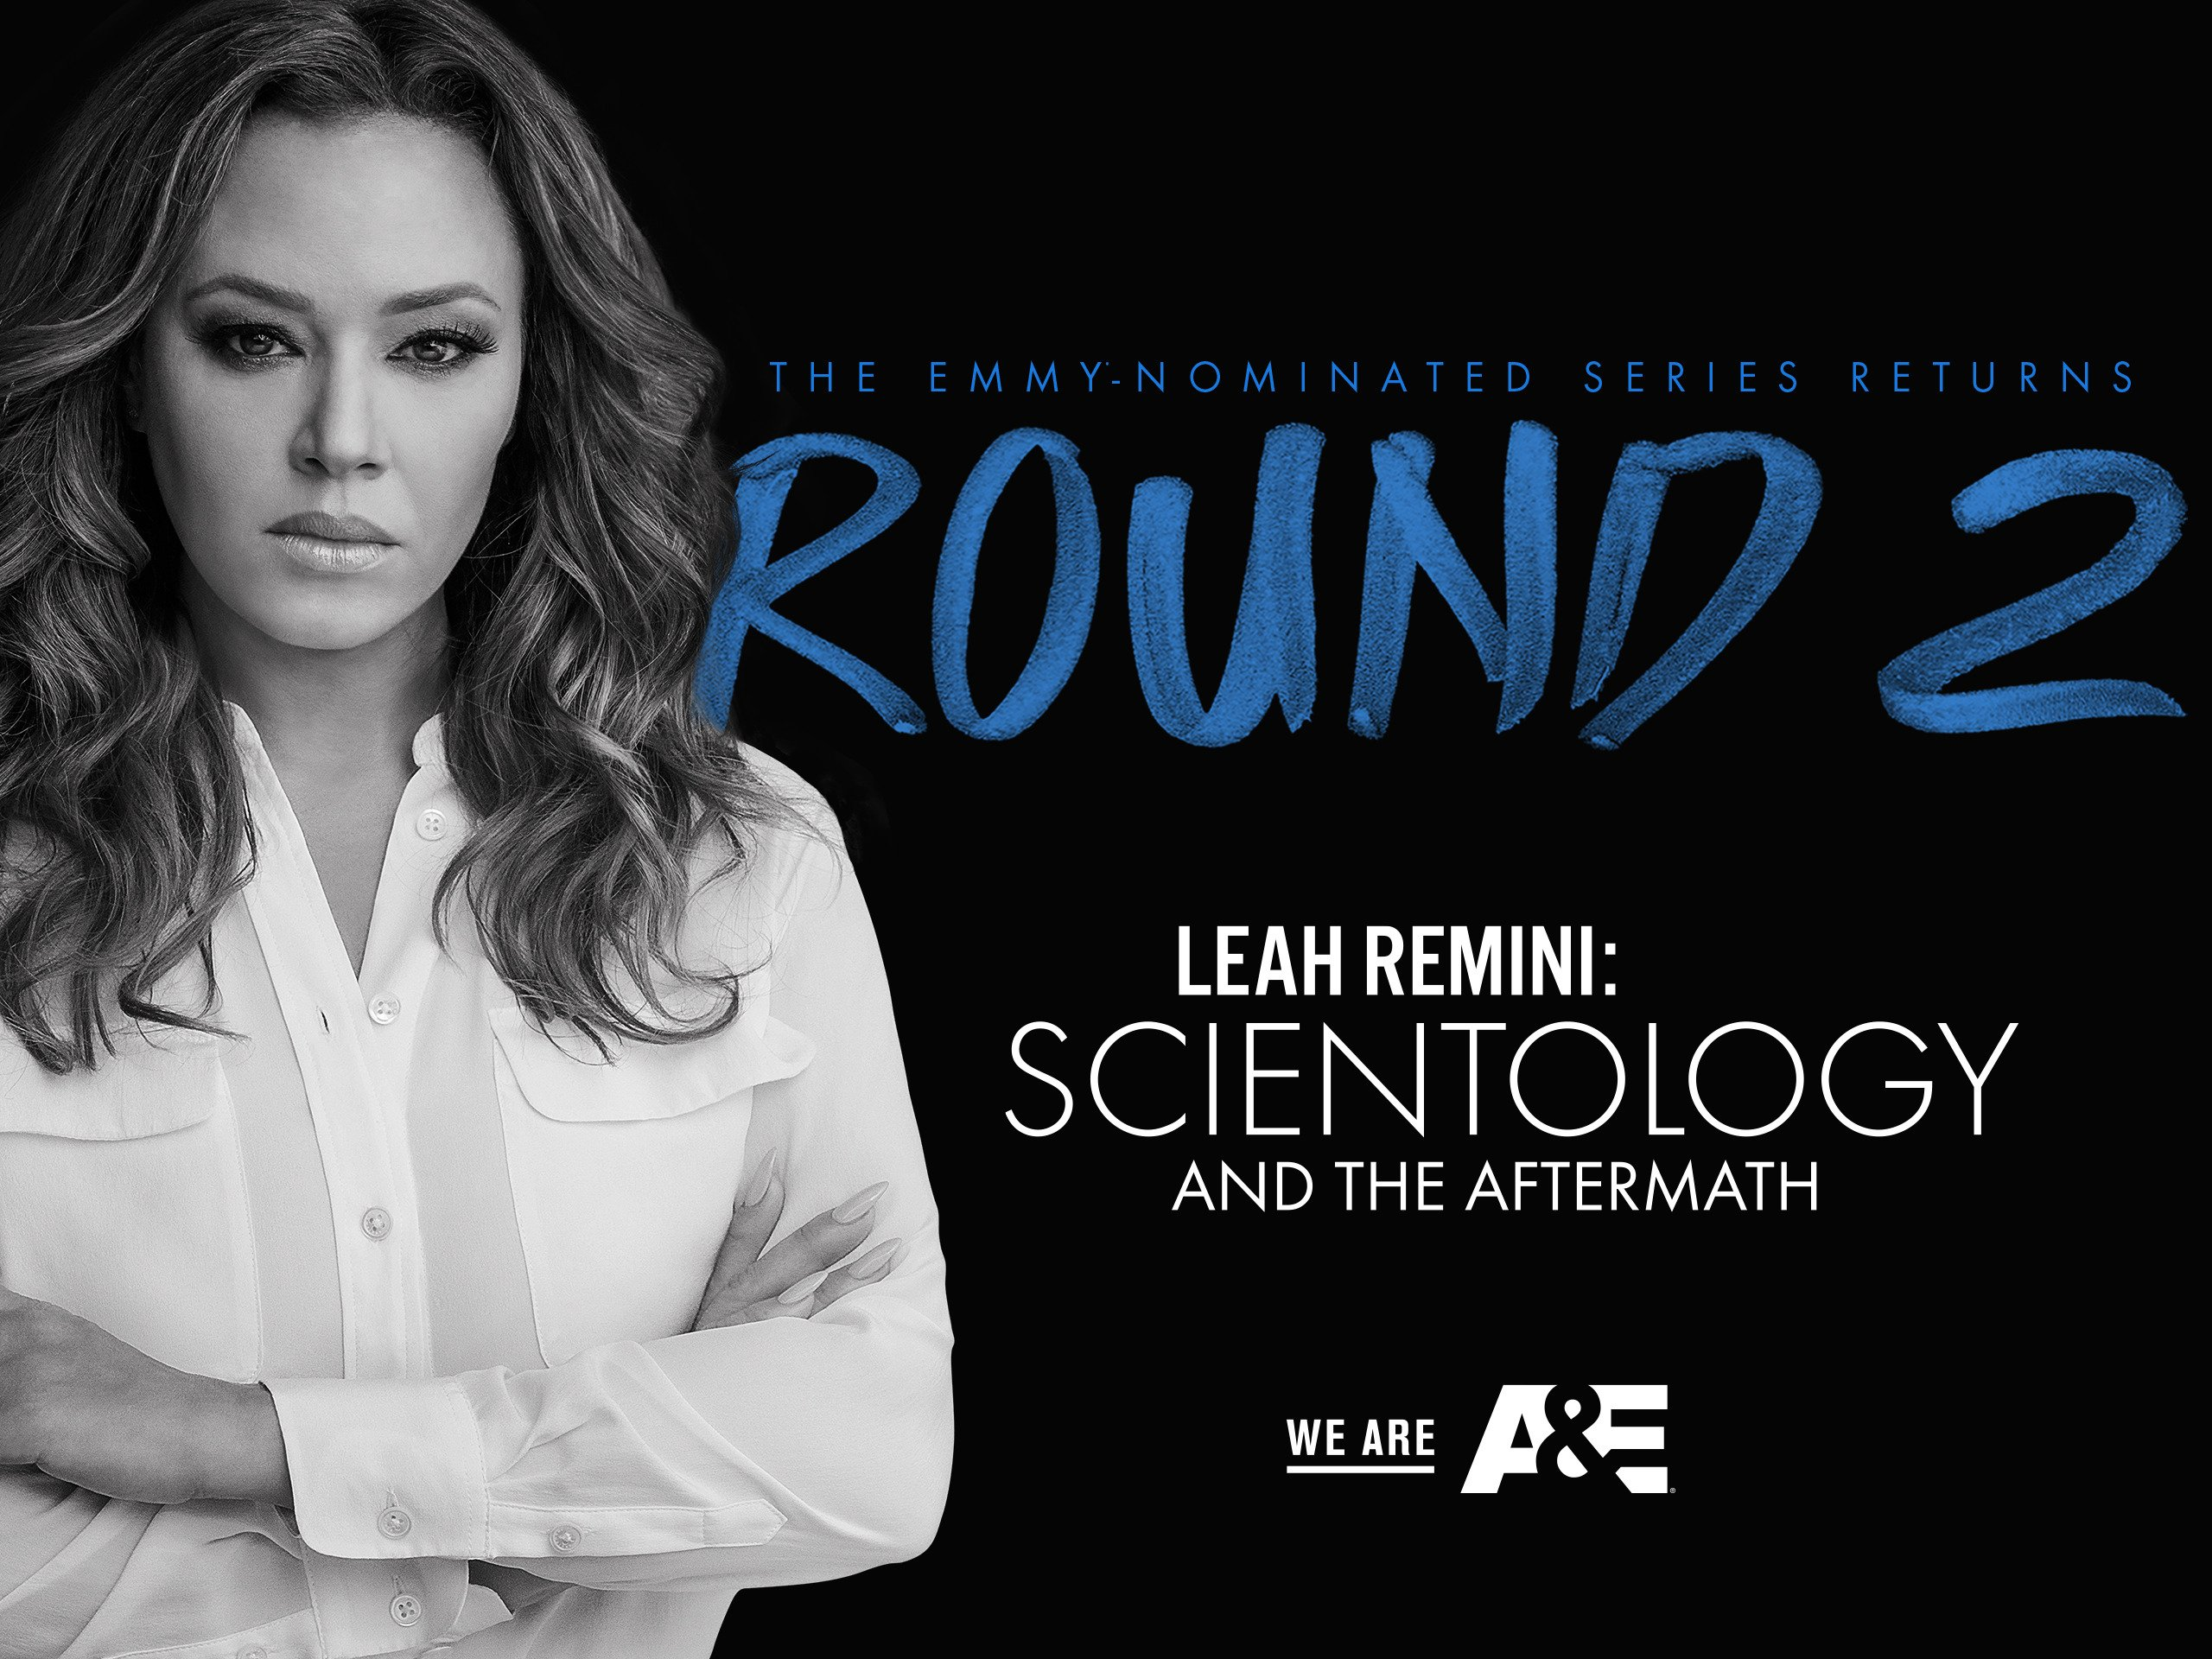 Online dating industry documentary on scientology